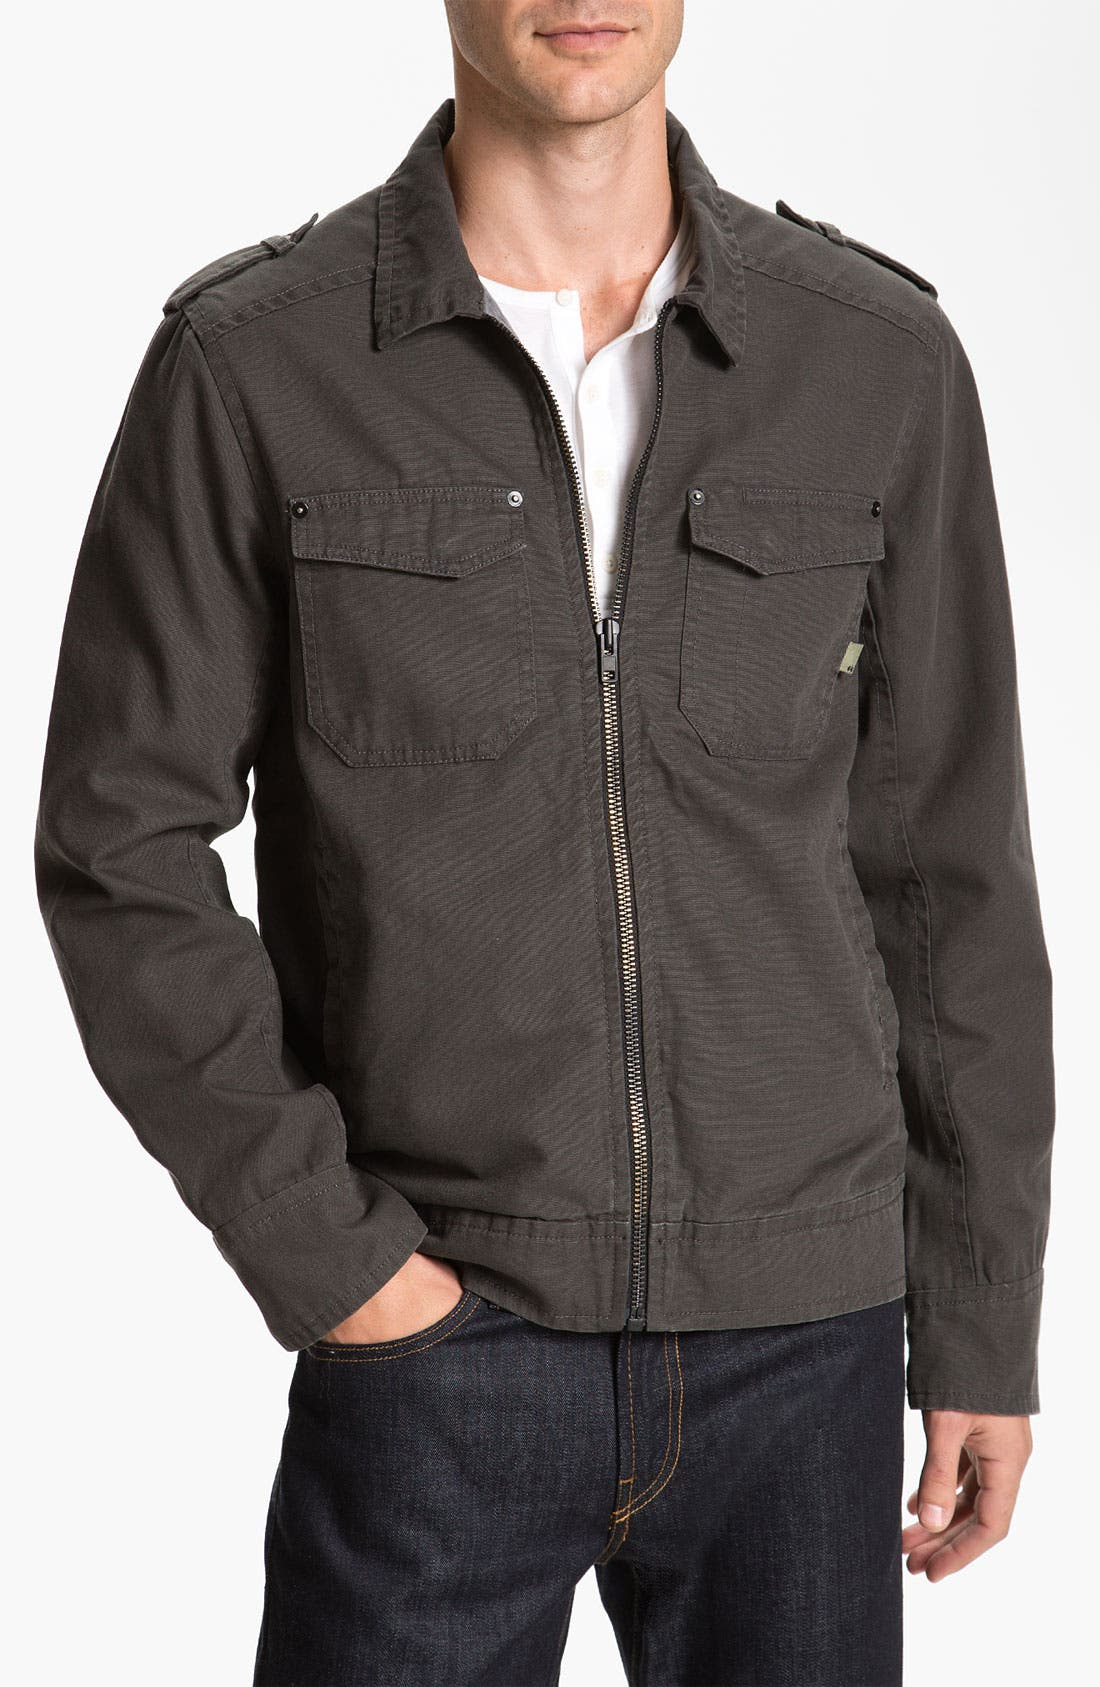 Main Image - R44 Rogan Standard Issue 'Drakers' Jacket